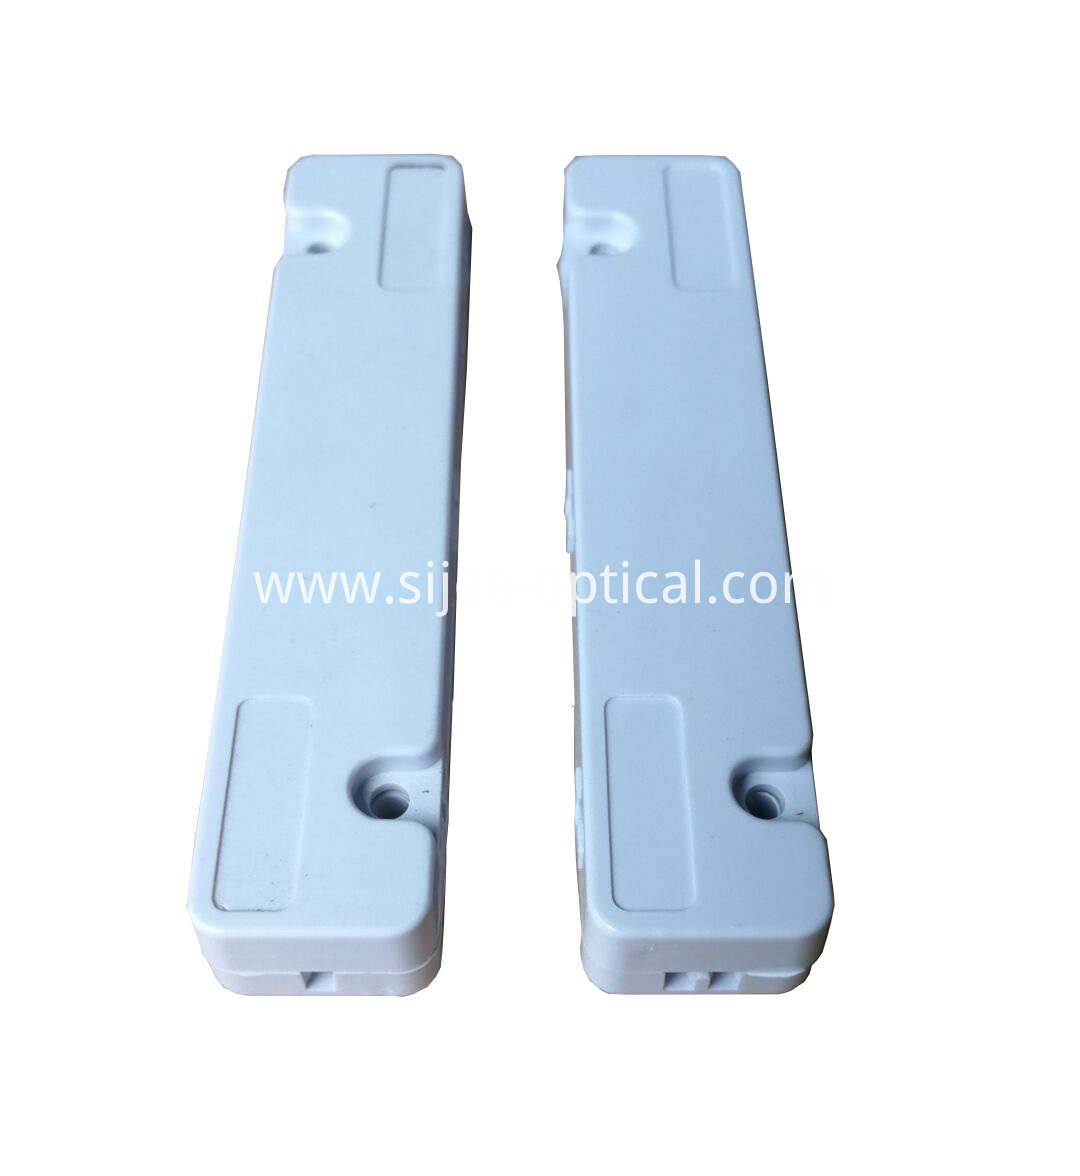 Drop Fiber Cable Protection Box